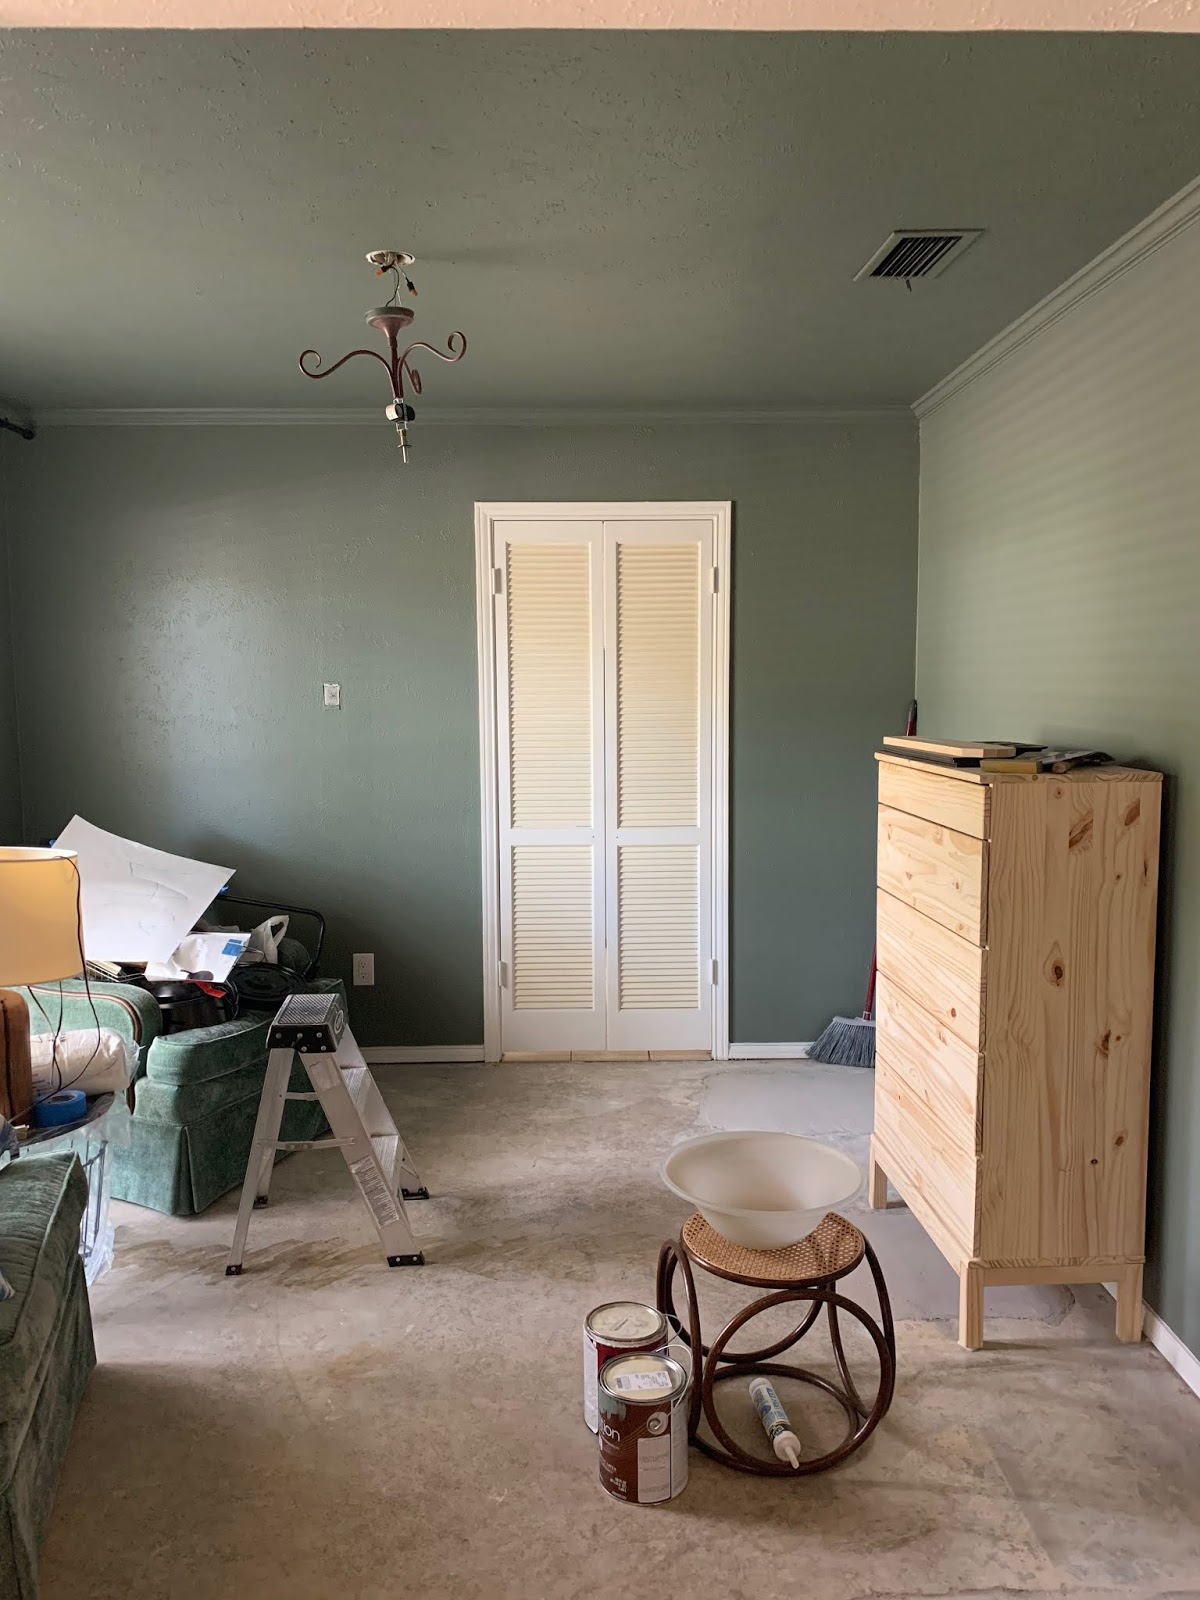 It's week 2 of the Spring 2019 One Room Challenge. Come check out our reading room progress! | House Homemade